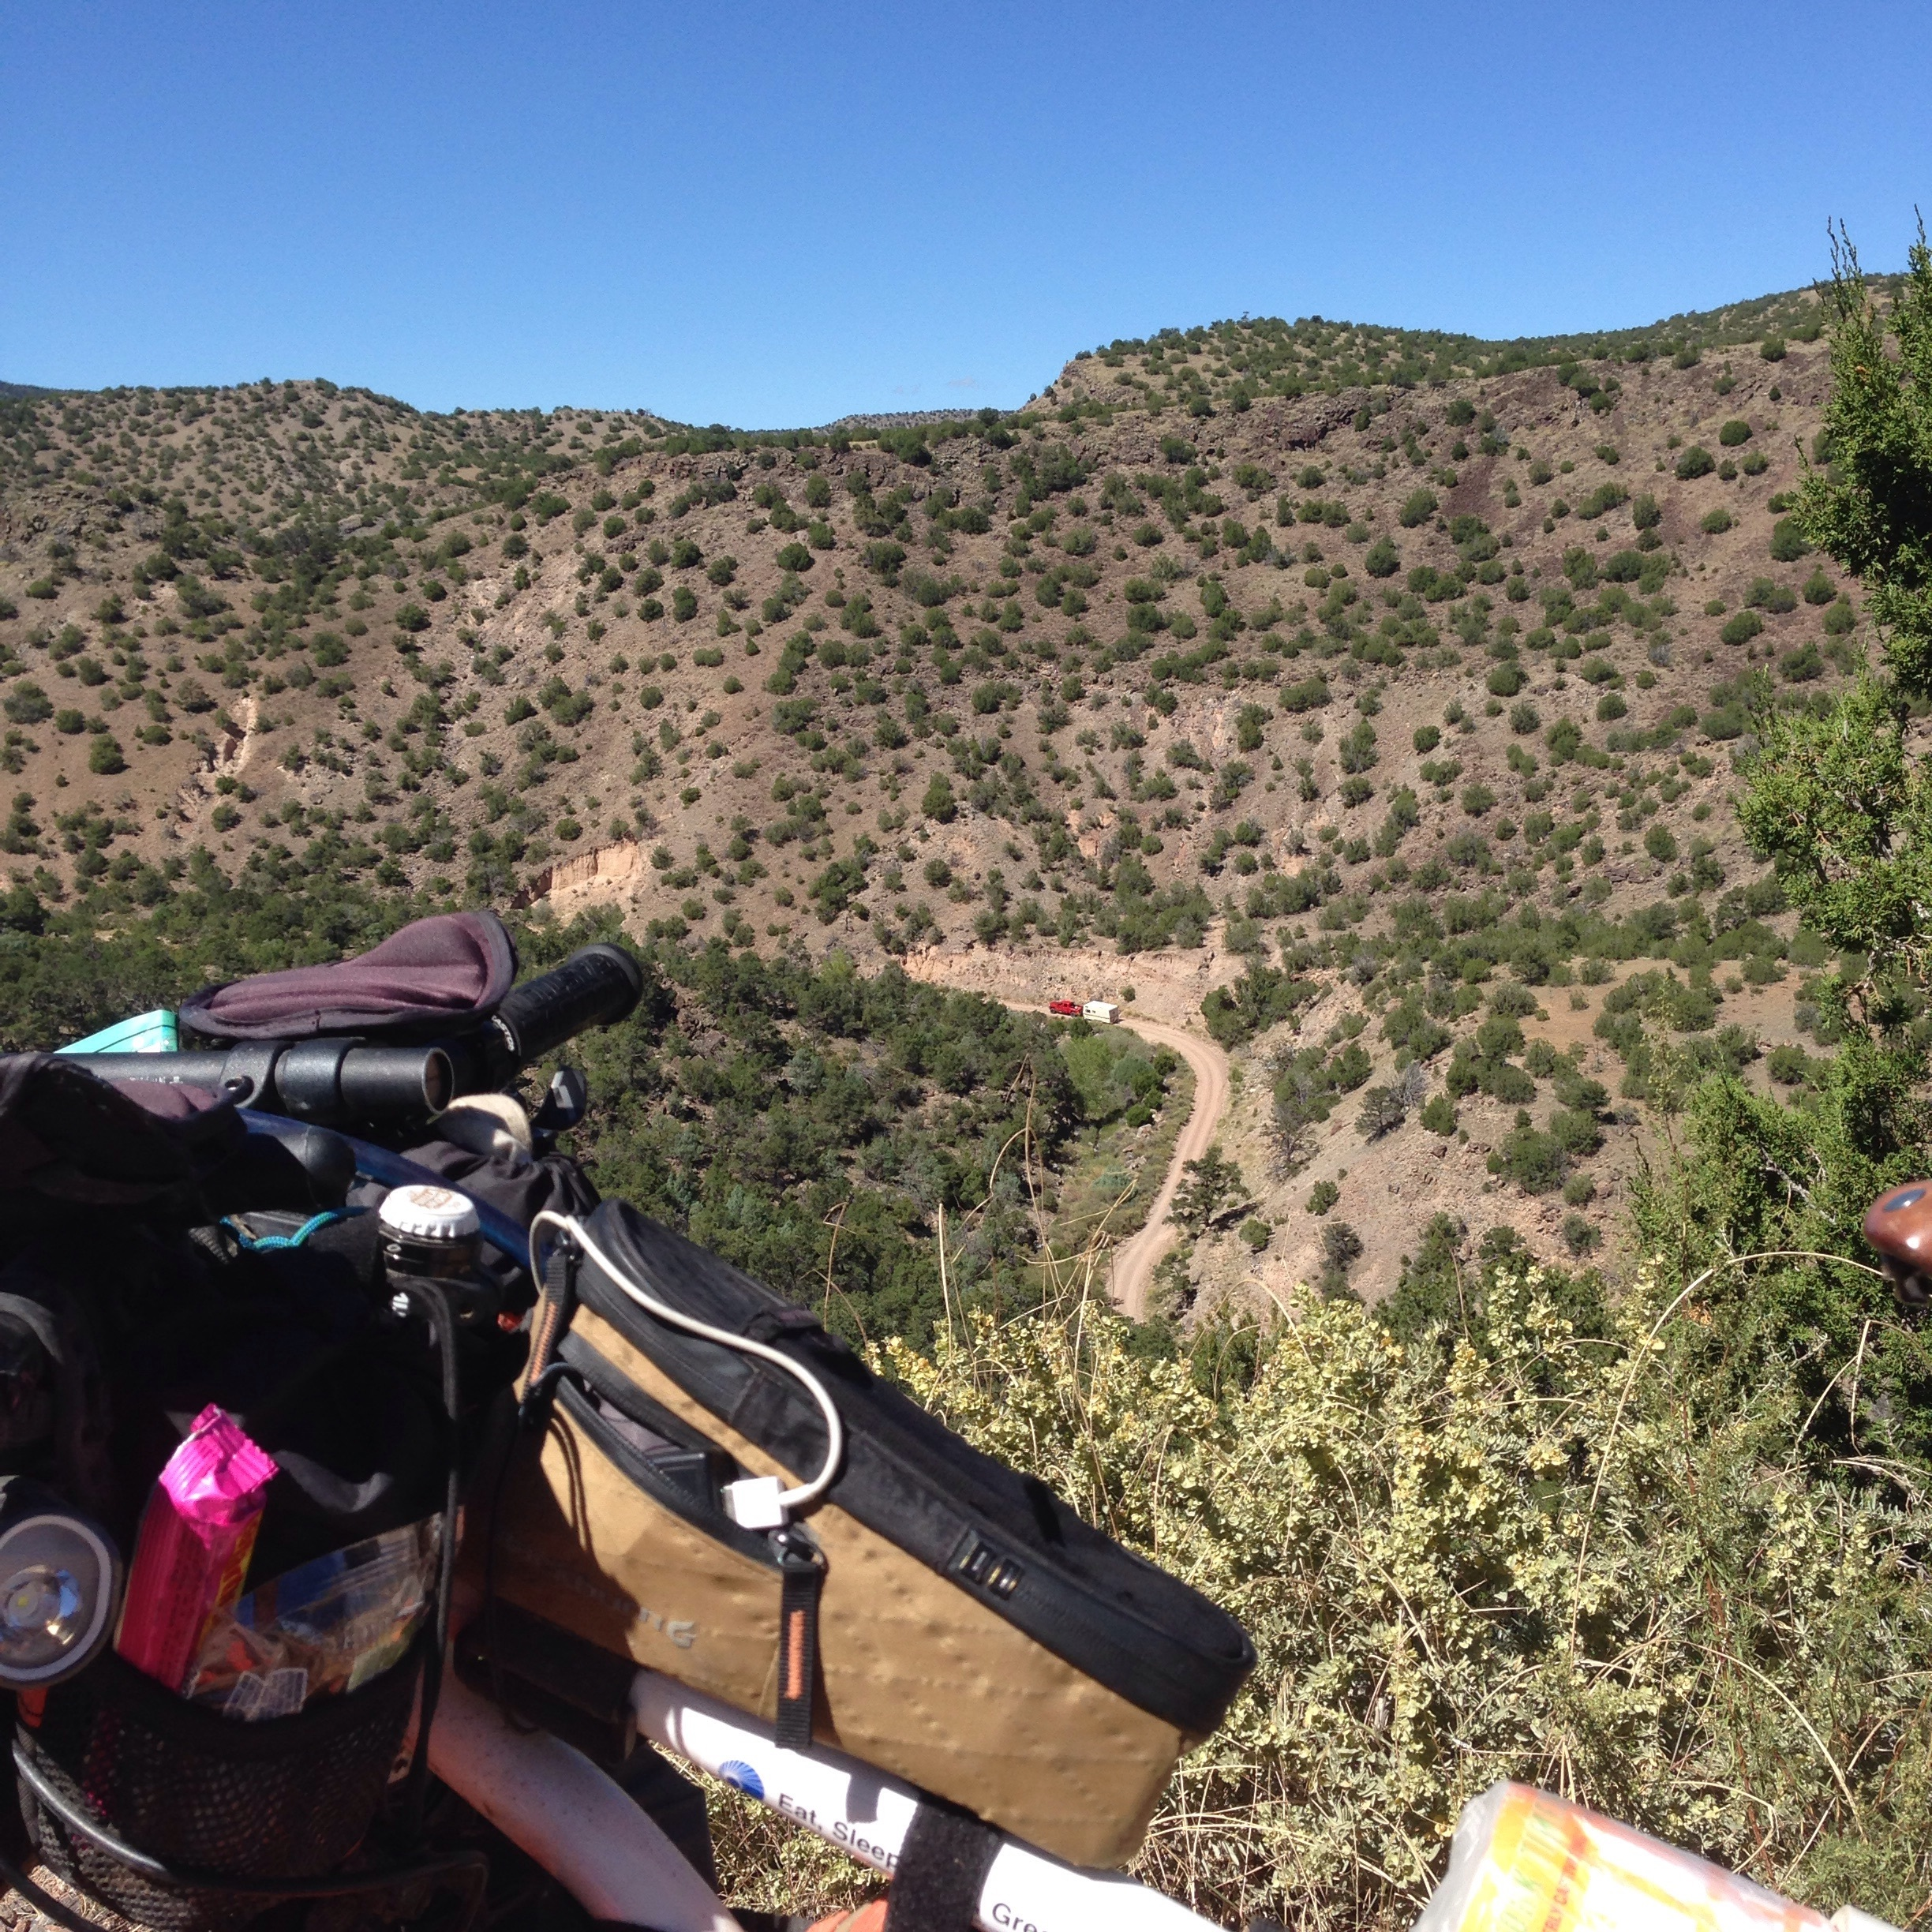 You can see the road from which I came... Part of the climb out of Abiquiu.